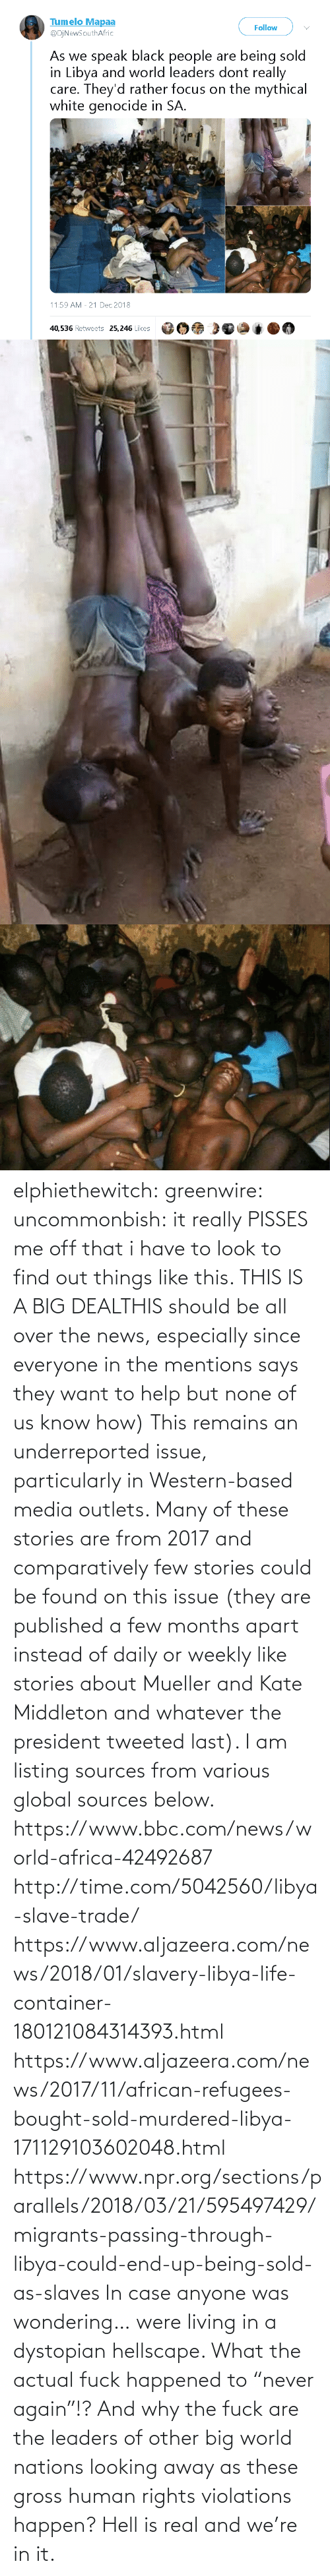 "container: elphiethewitch: greenwire:  uncommonbish:  it really PISSES me off that i have to look to find out things like this. THIS IS A BIG DEALTHIS should be all over the news, especially since everyone in the mentions says they want to help but none of us know how)  This remains an underreported issue, particularly in Western-based media outlets. Many of these stories are from 2017 and comparatively few stories could be found on this issue (they are published a few months apart instead of daily or weekly like stories about Mueller and Kate Middleton and whatever the president tweeted last). I am listing sources from various global sources below.  https://www.bbc.com/news/world-africa-42492687 http://time.com/5042560/libya-slave-trade/ https://www.aljazeera.com/news/2018/01/slavery-libya-life-container-180121084314393.html https://www.aljazeera.com/news/2017/11/african-refugees-bought-sold-murdered-libya-171129103602048.html https://www.npr.org/sections/parallels/2018/03/21/595497429/migrants-passing-through-libya-could-end-up-being-sold-as-slaves   In case anyone was wondering… were living in a dystopian hellscape.  What the actual fuck happened to ""never again""!? And why the fuck are the leaders of other big world nations looking away as these gross human rights violations happen?  Hell is real and we're in it."